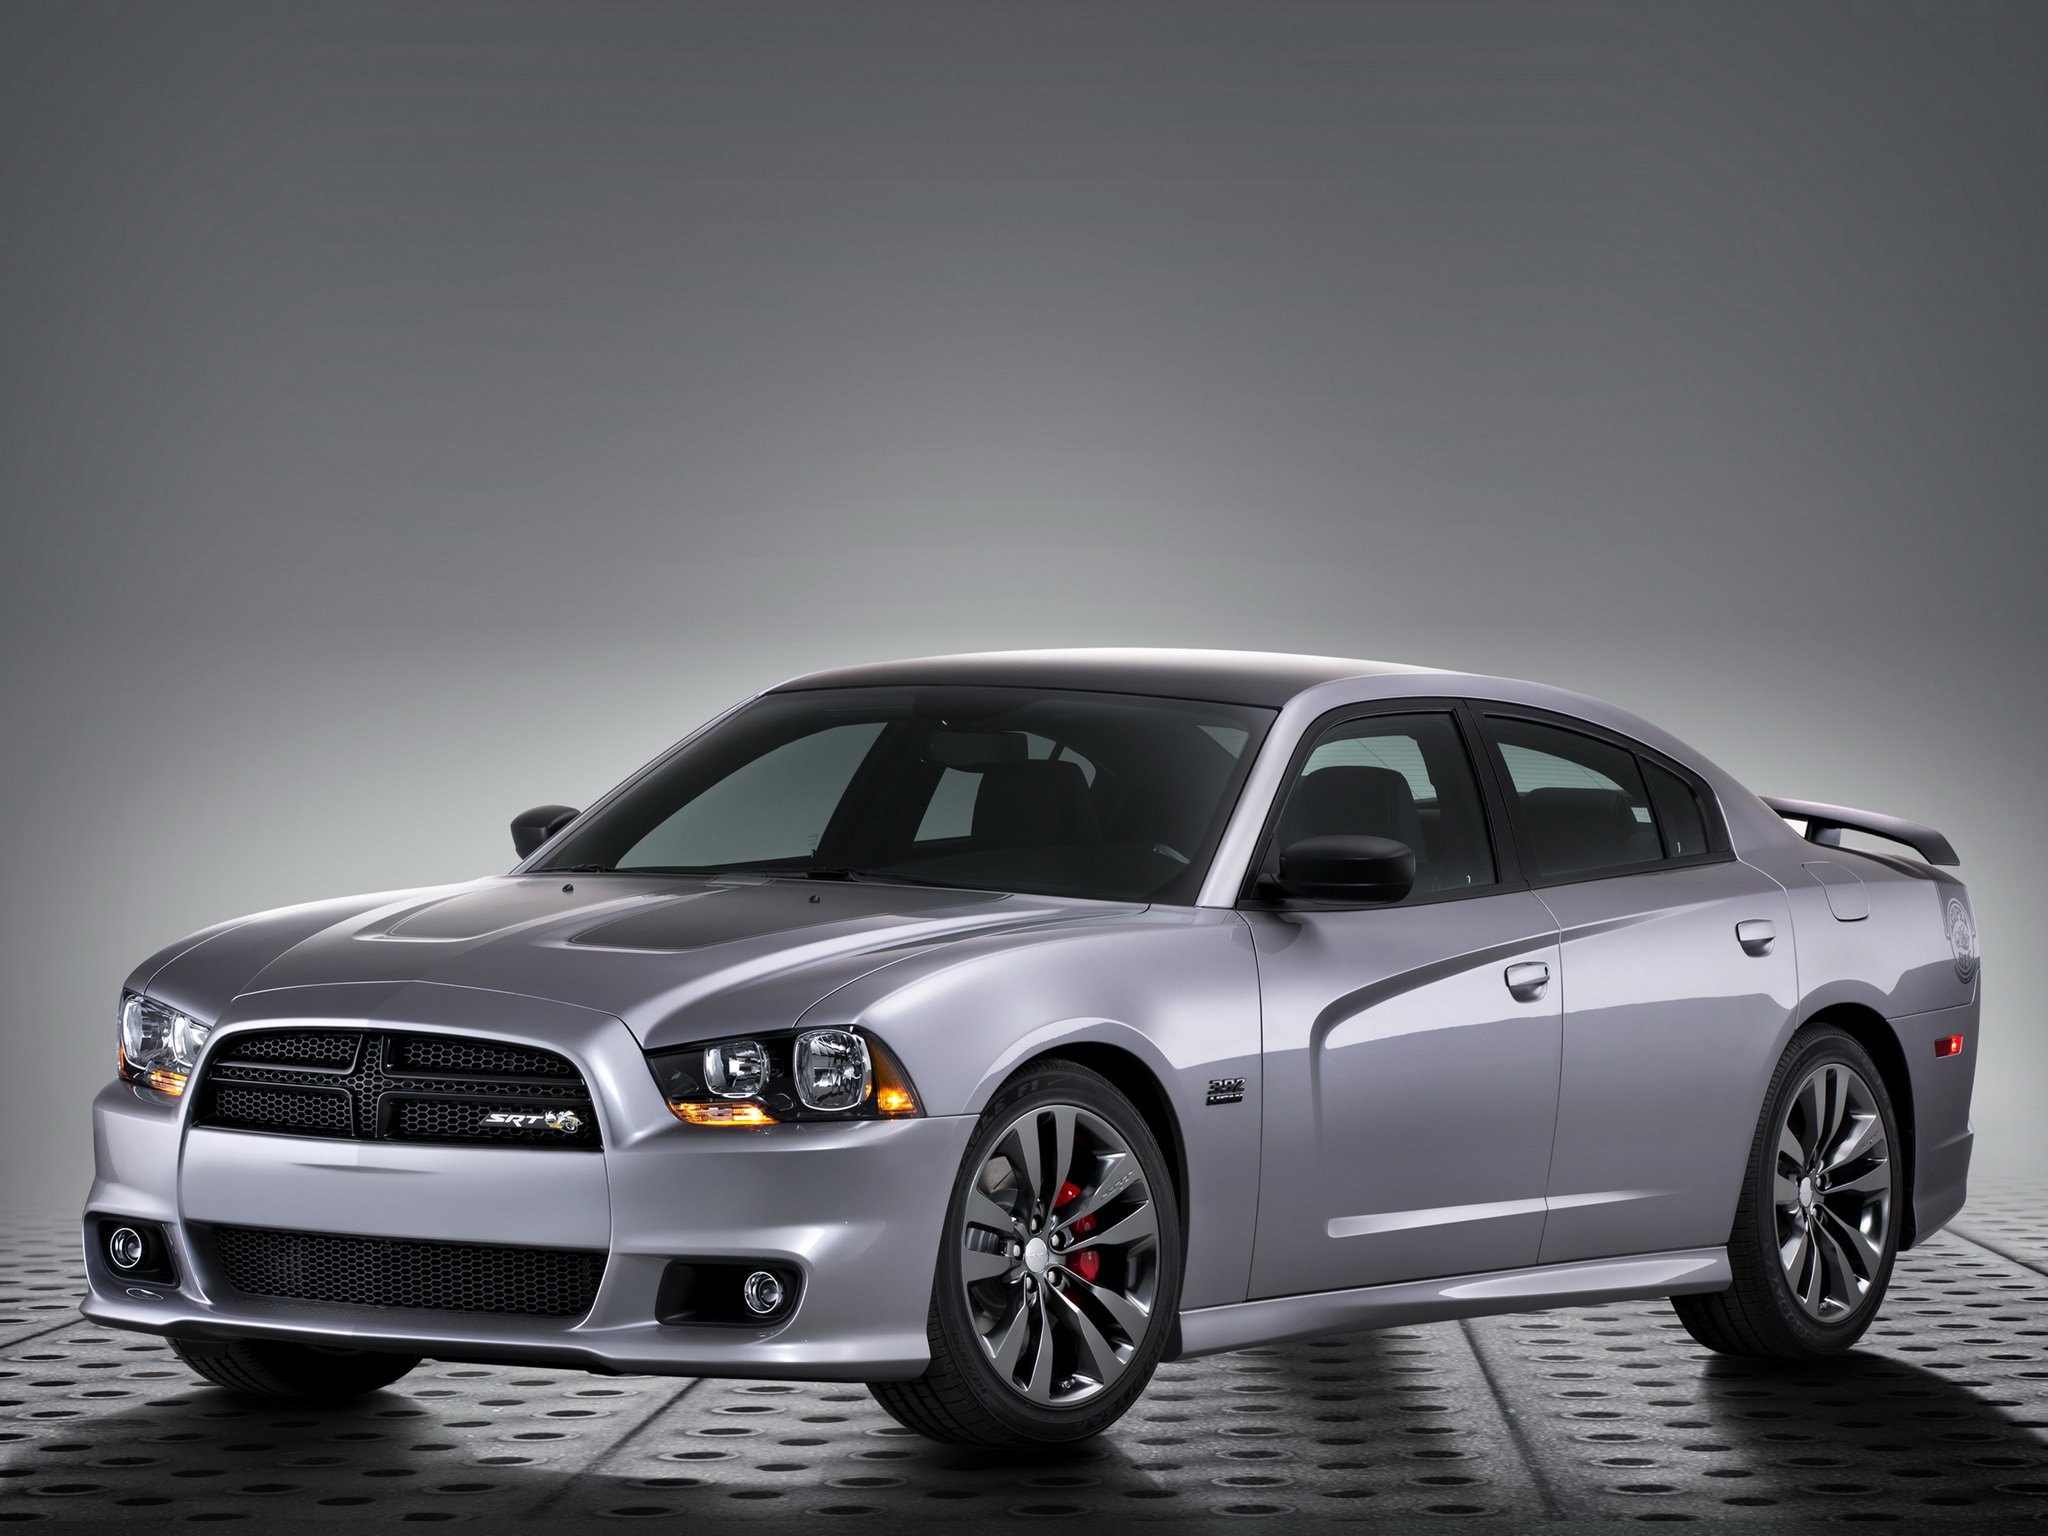 2014 dodge charger srt8 satin vapor l d muscle f wallpaper. Cars Review. Best American Auto & Cars Review